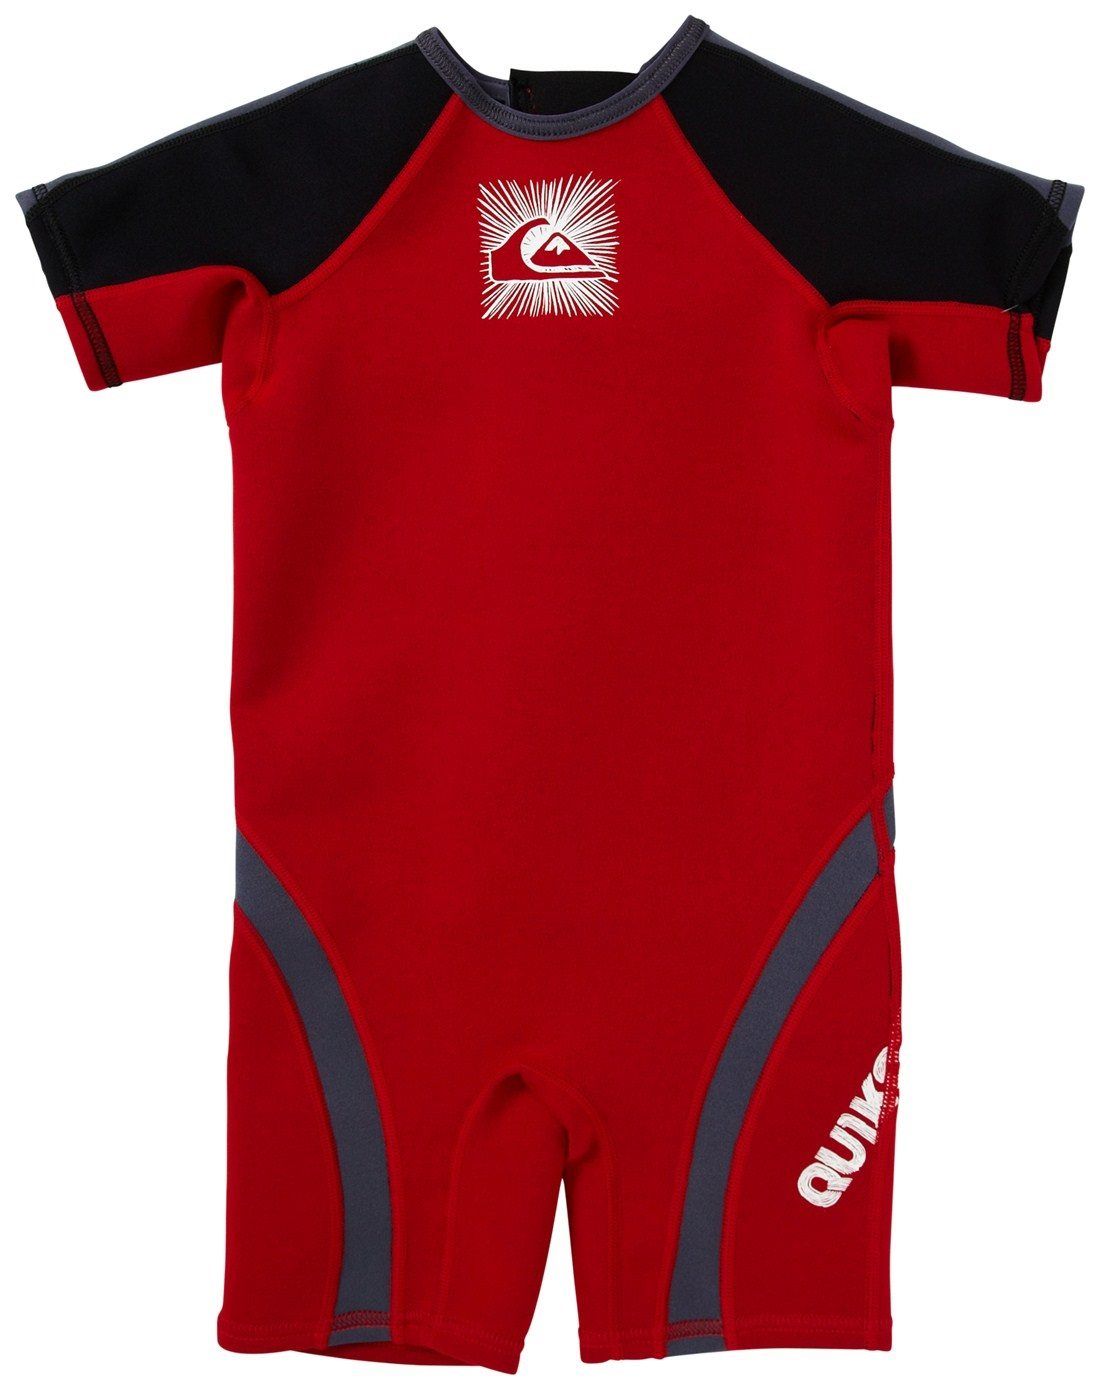 Quiksilver Syncro 1.5mm Boys Toddler Springsuit - Red/Black